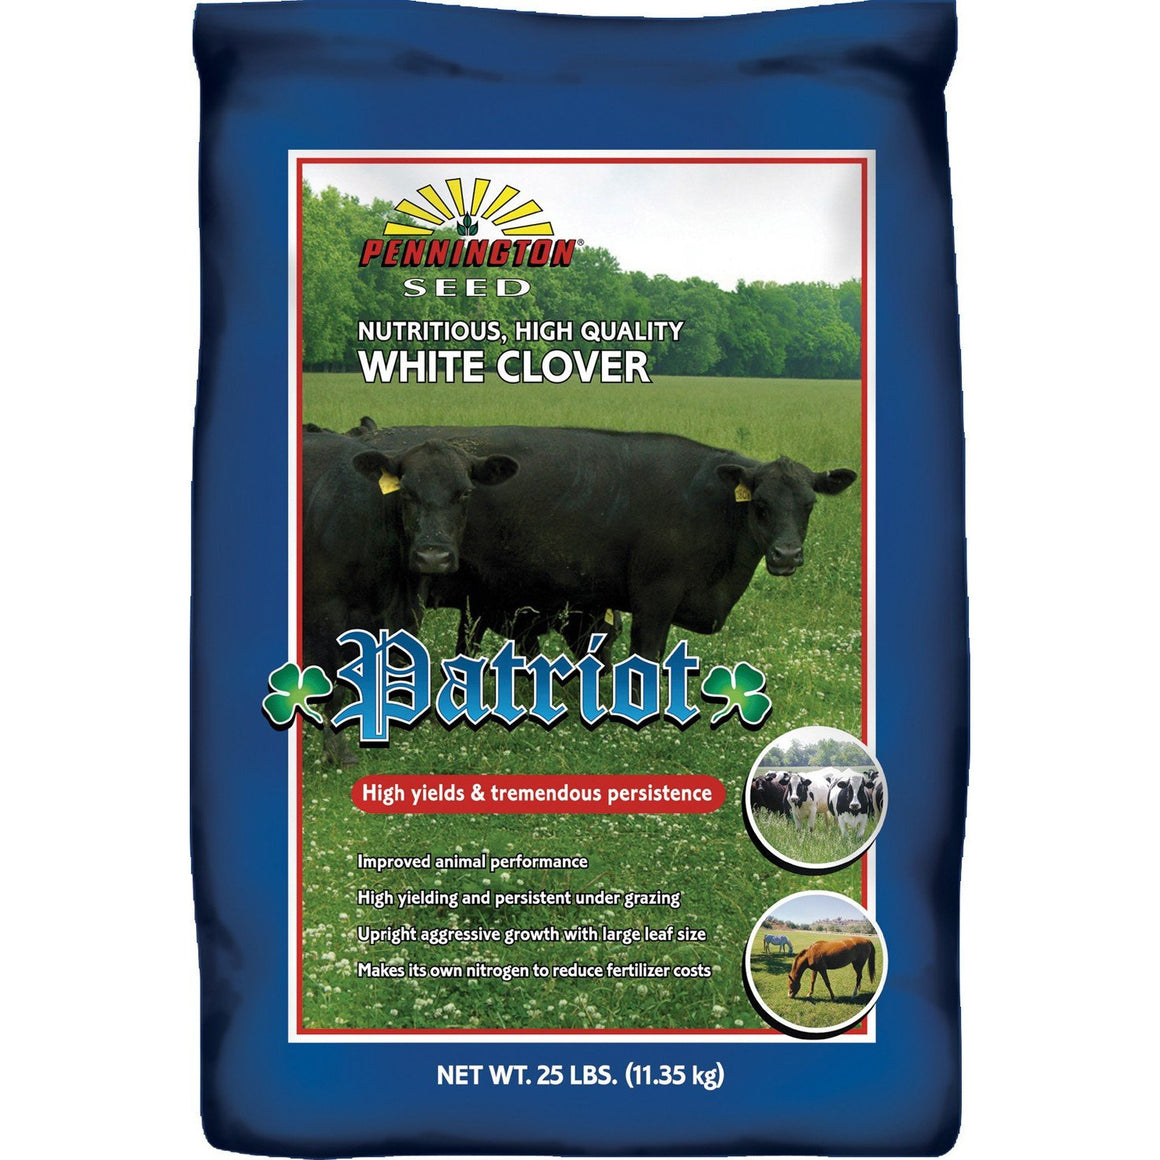 Patriot Clover Seed 25 Lbs.